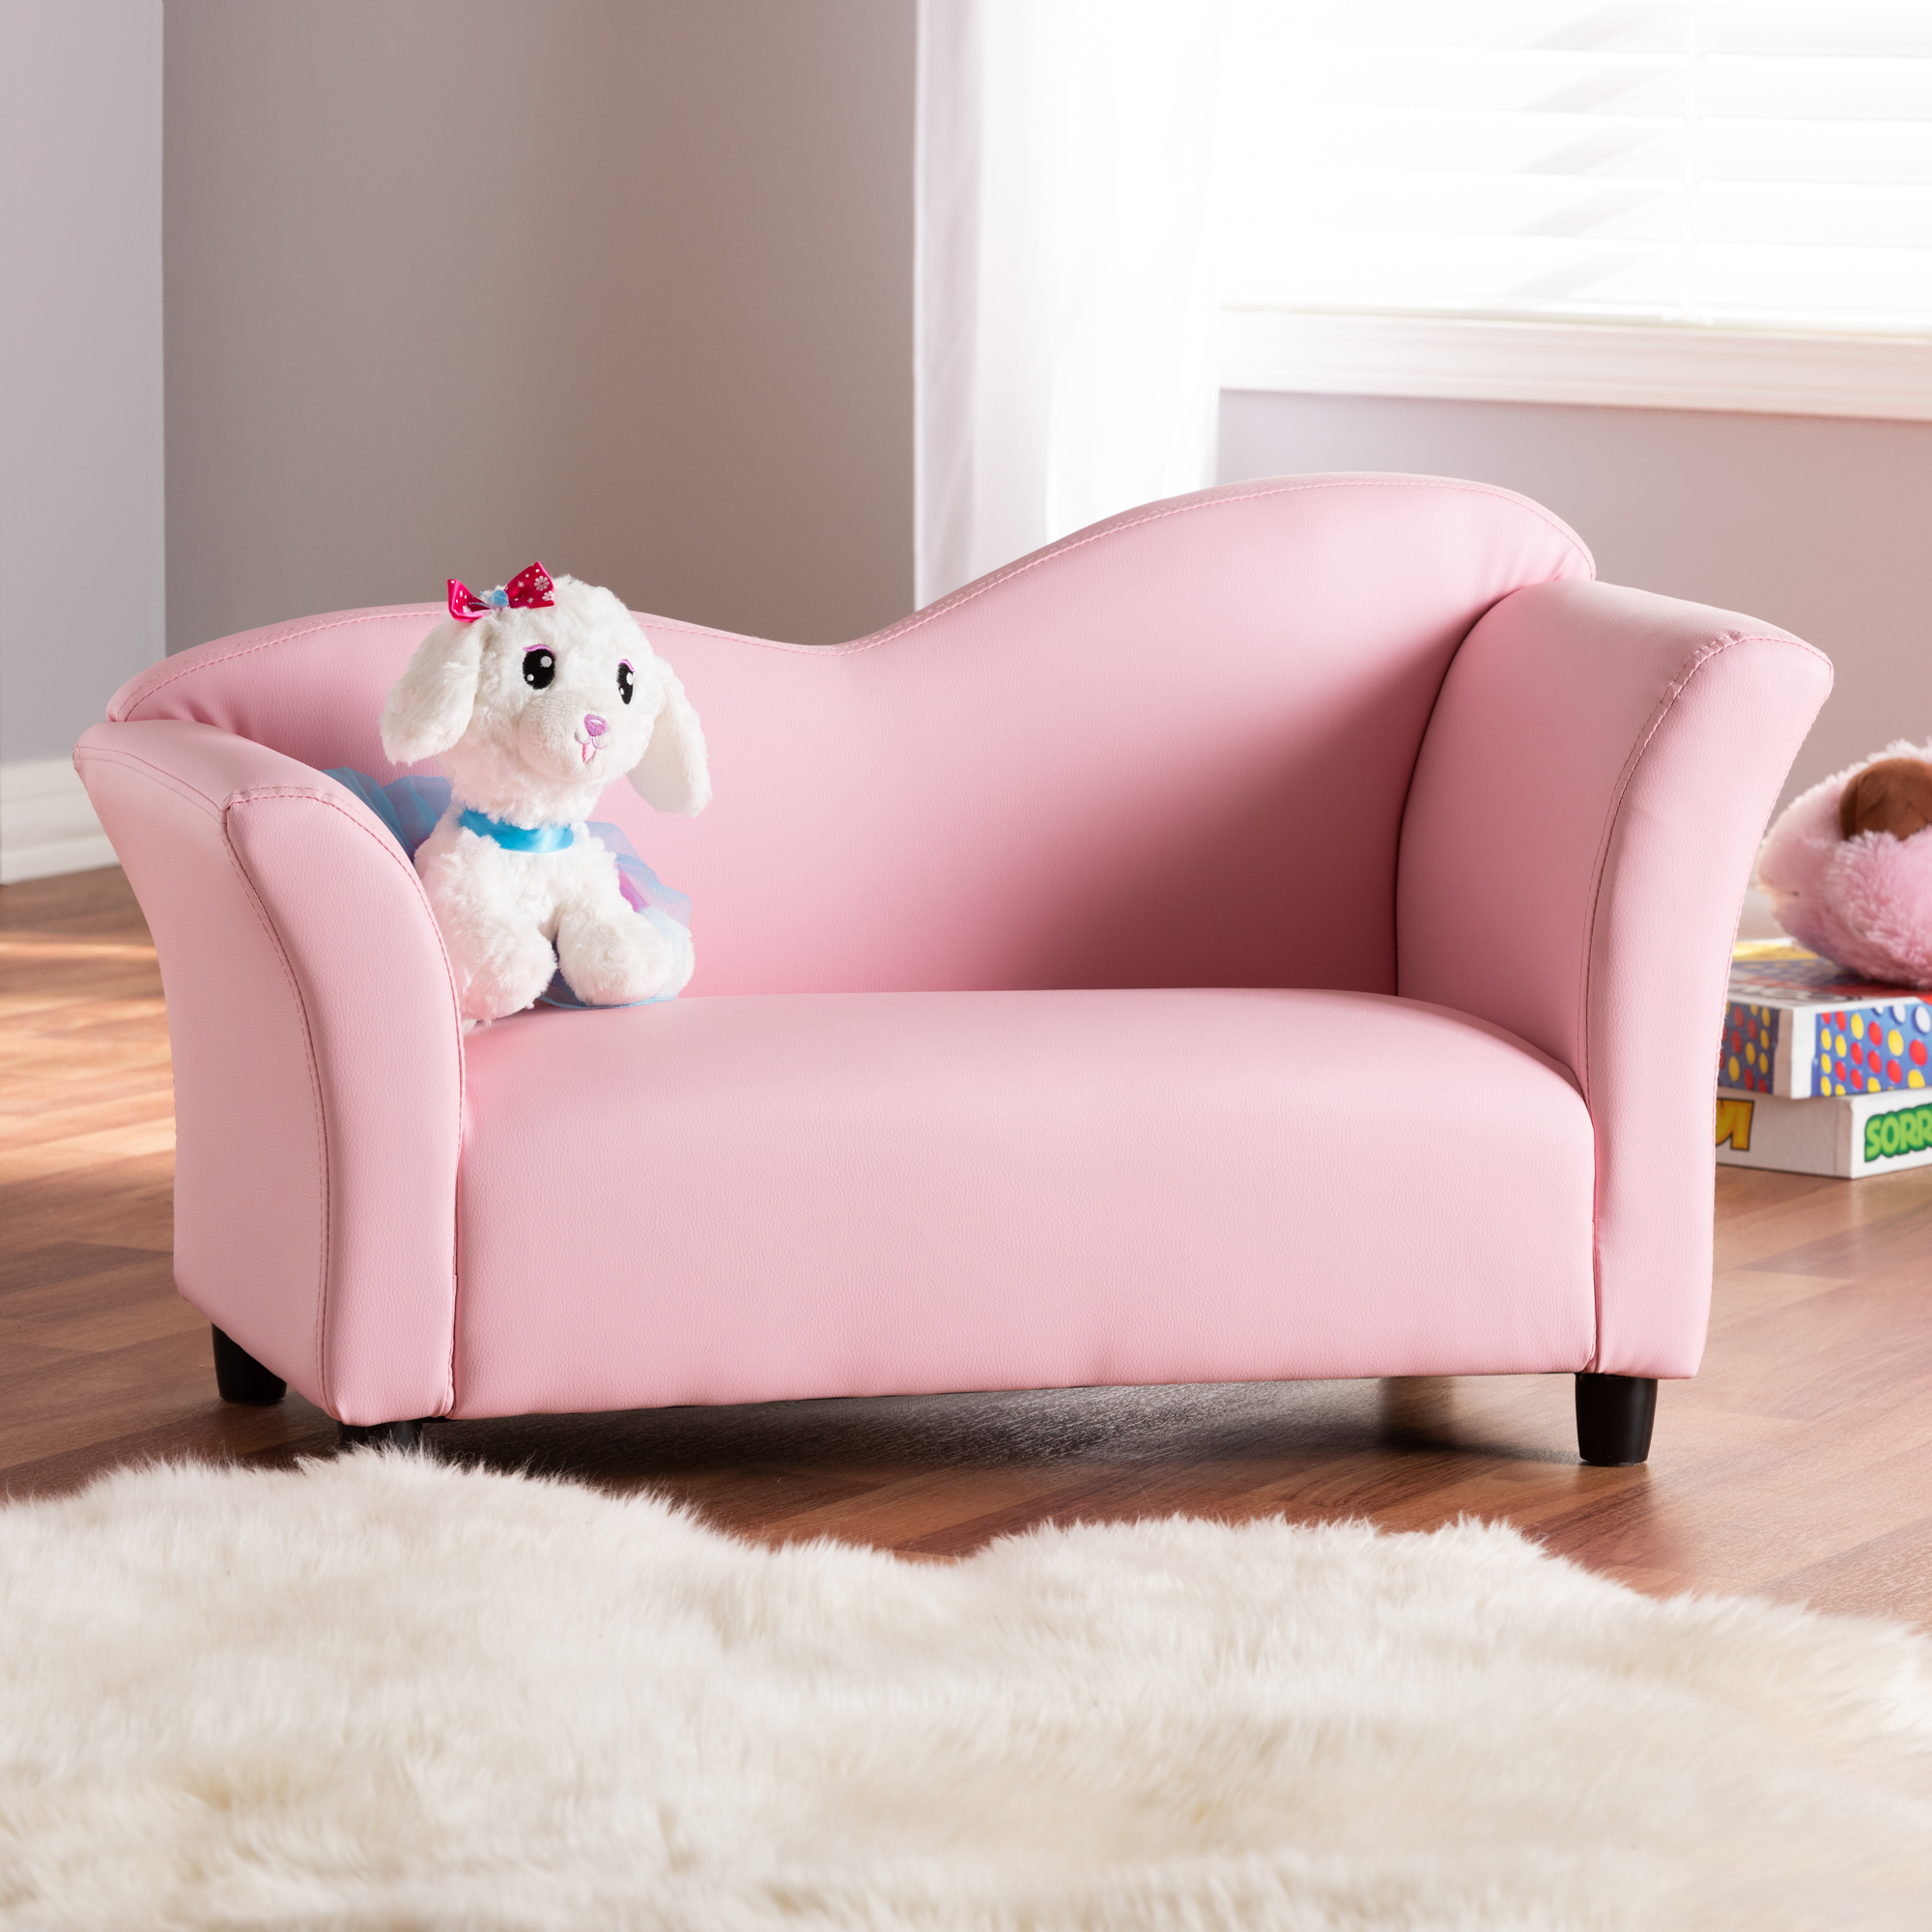 Baxton Studio Erica Pink and White Upholstered Kids 2-Seater Sofa